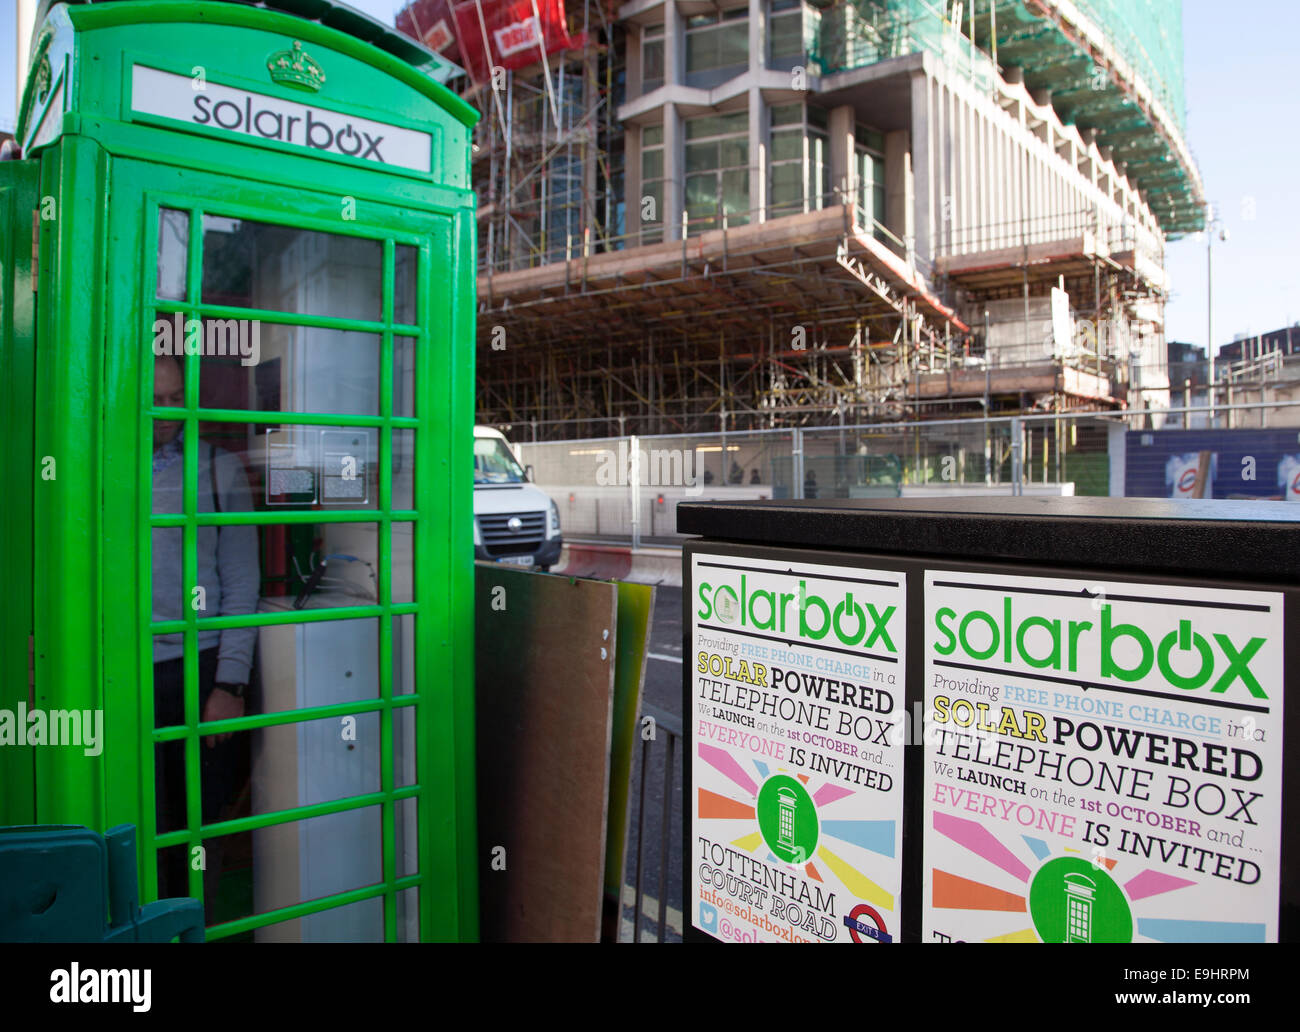 Solar-powered telephone box for charging mobile phones, Central London Stock Photo